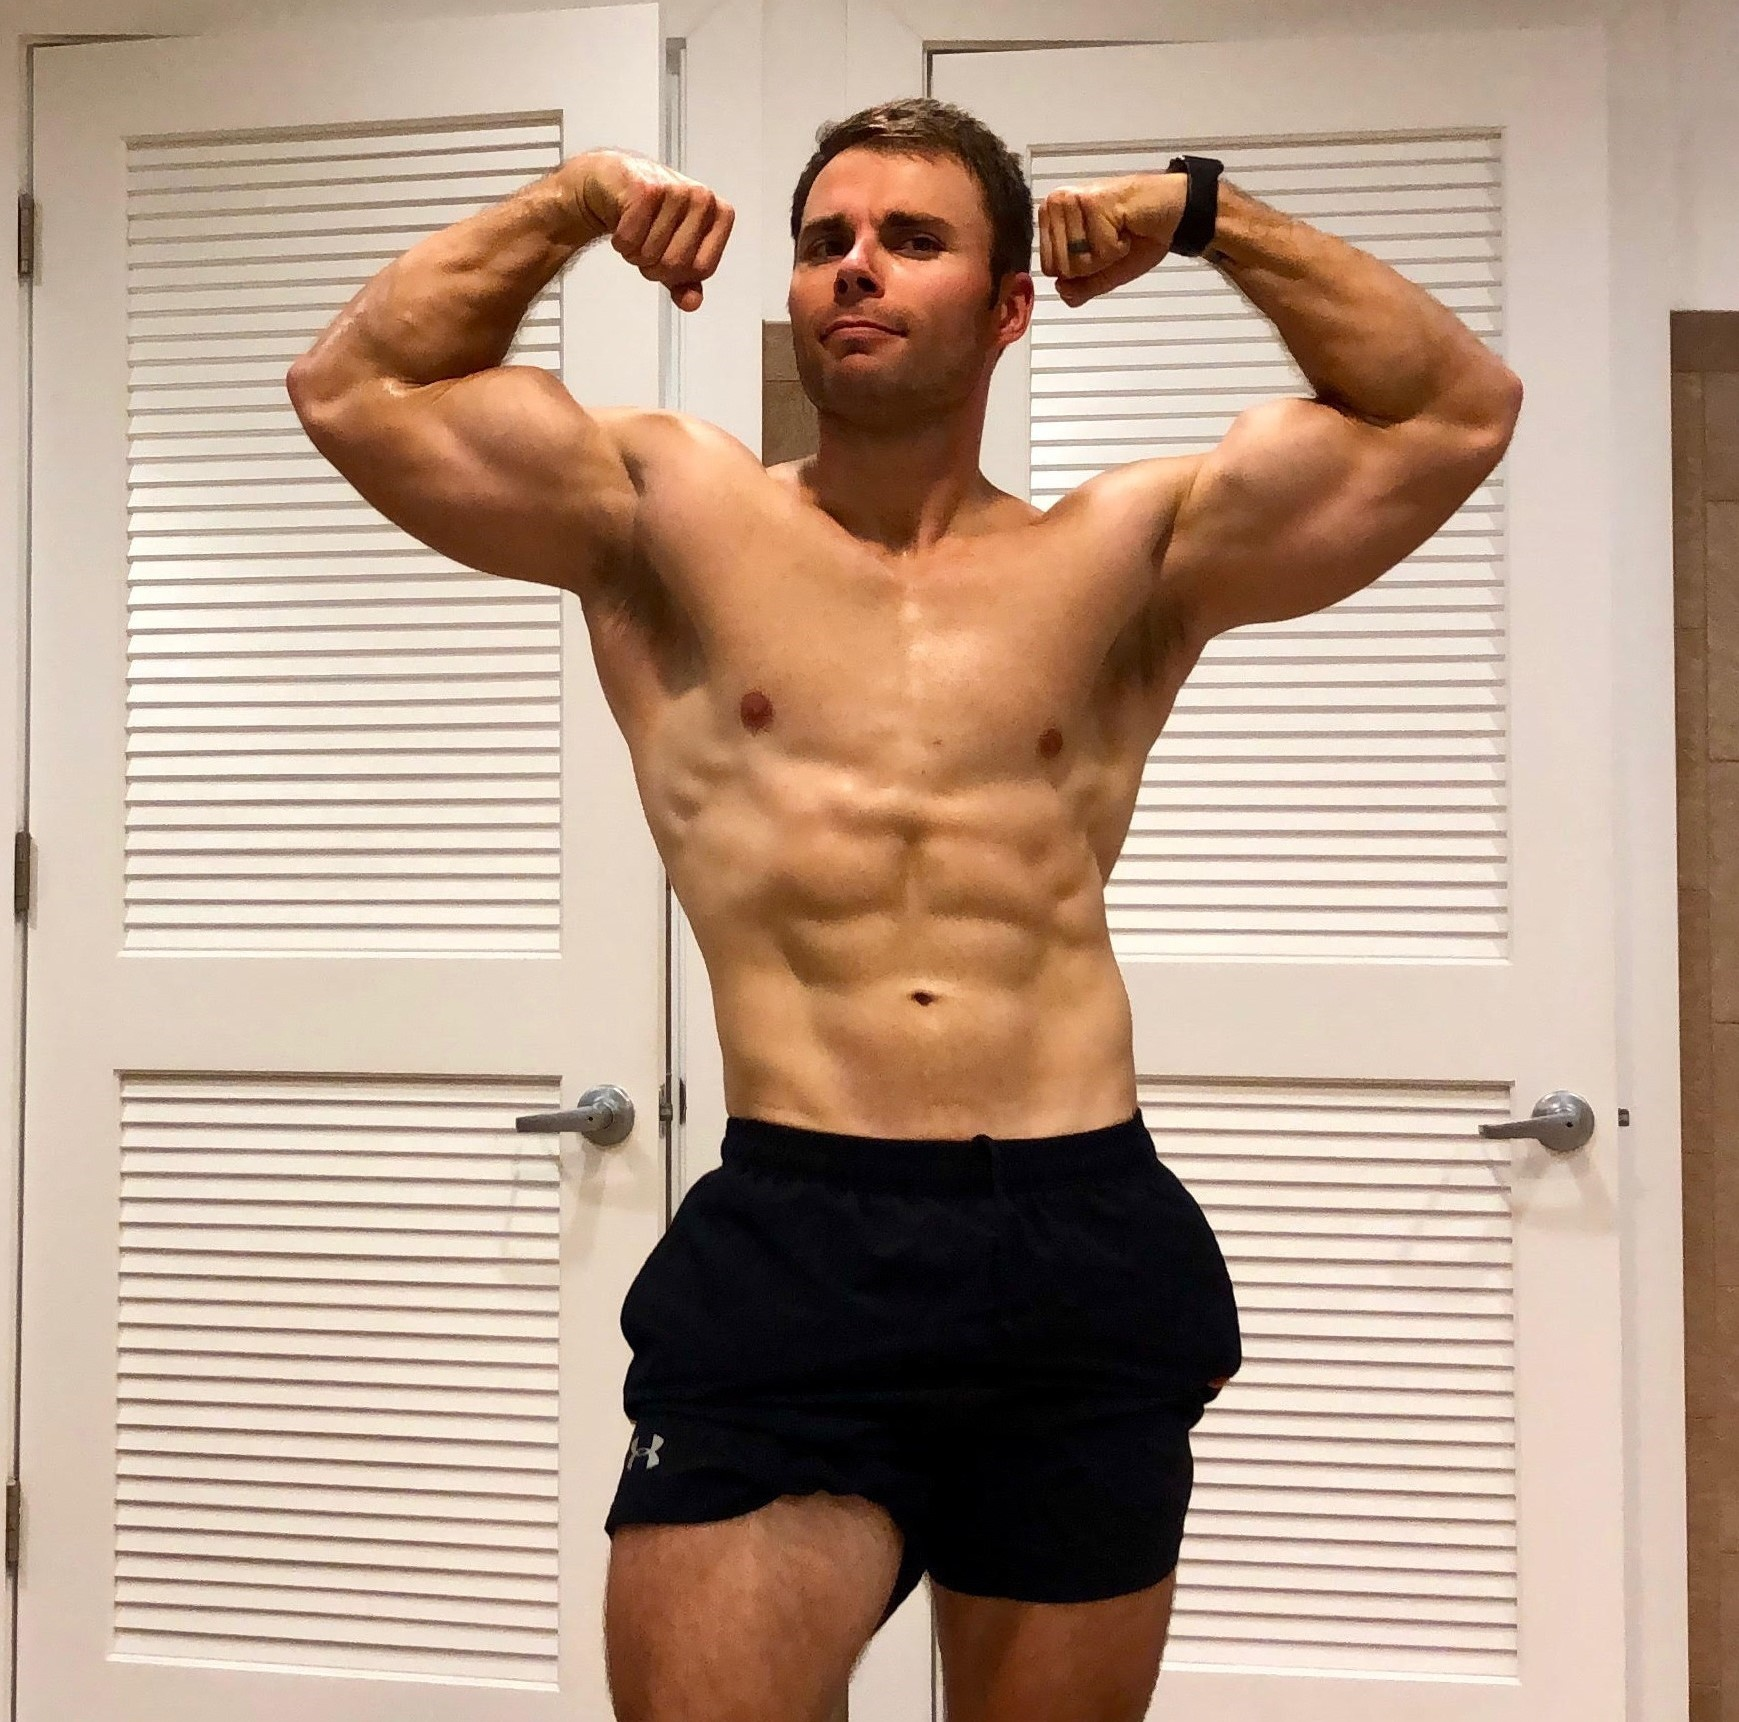 Spencer - Spencer is a police officer and former athlete who loves to run, bike, and lift weights. He is a very disciplined individual but lacked the know how when it came to nutrition. Spencer has lost 18lbs of body weight and gained strength on his major lifts so far!